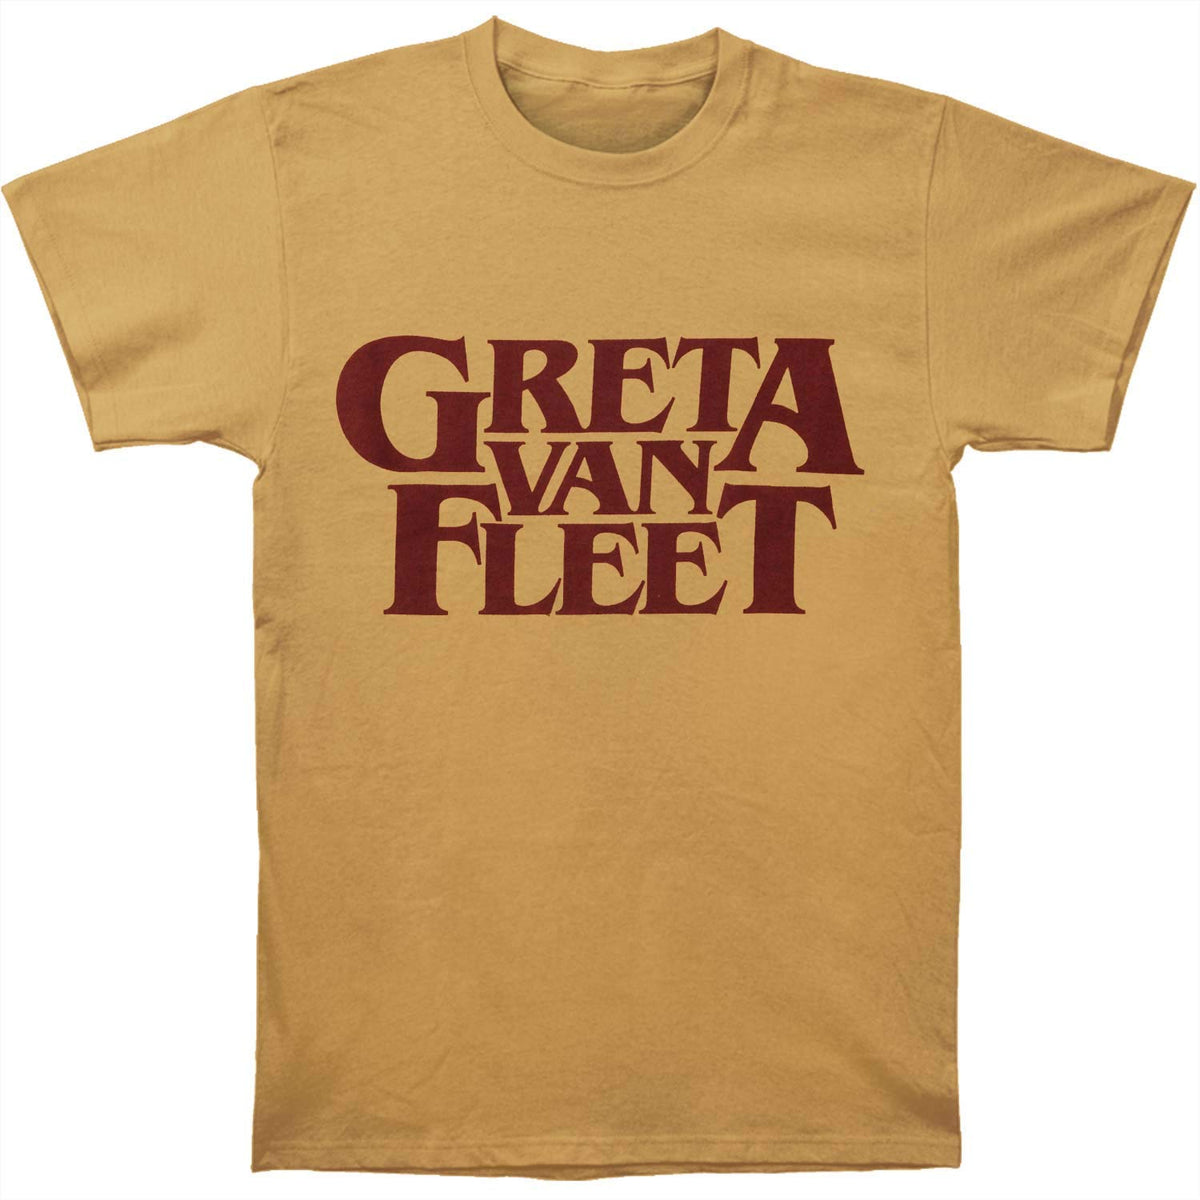 Greta Van Fleet: Old Gold Logo Shirt - Gold